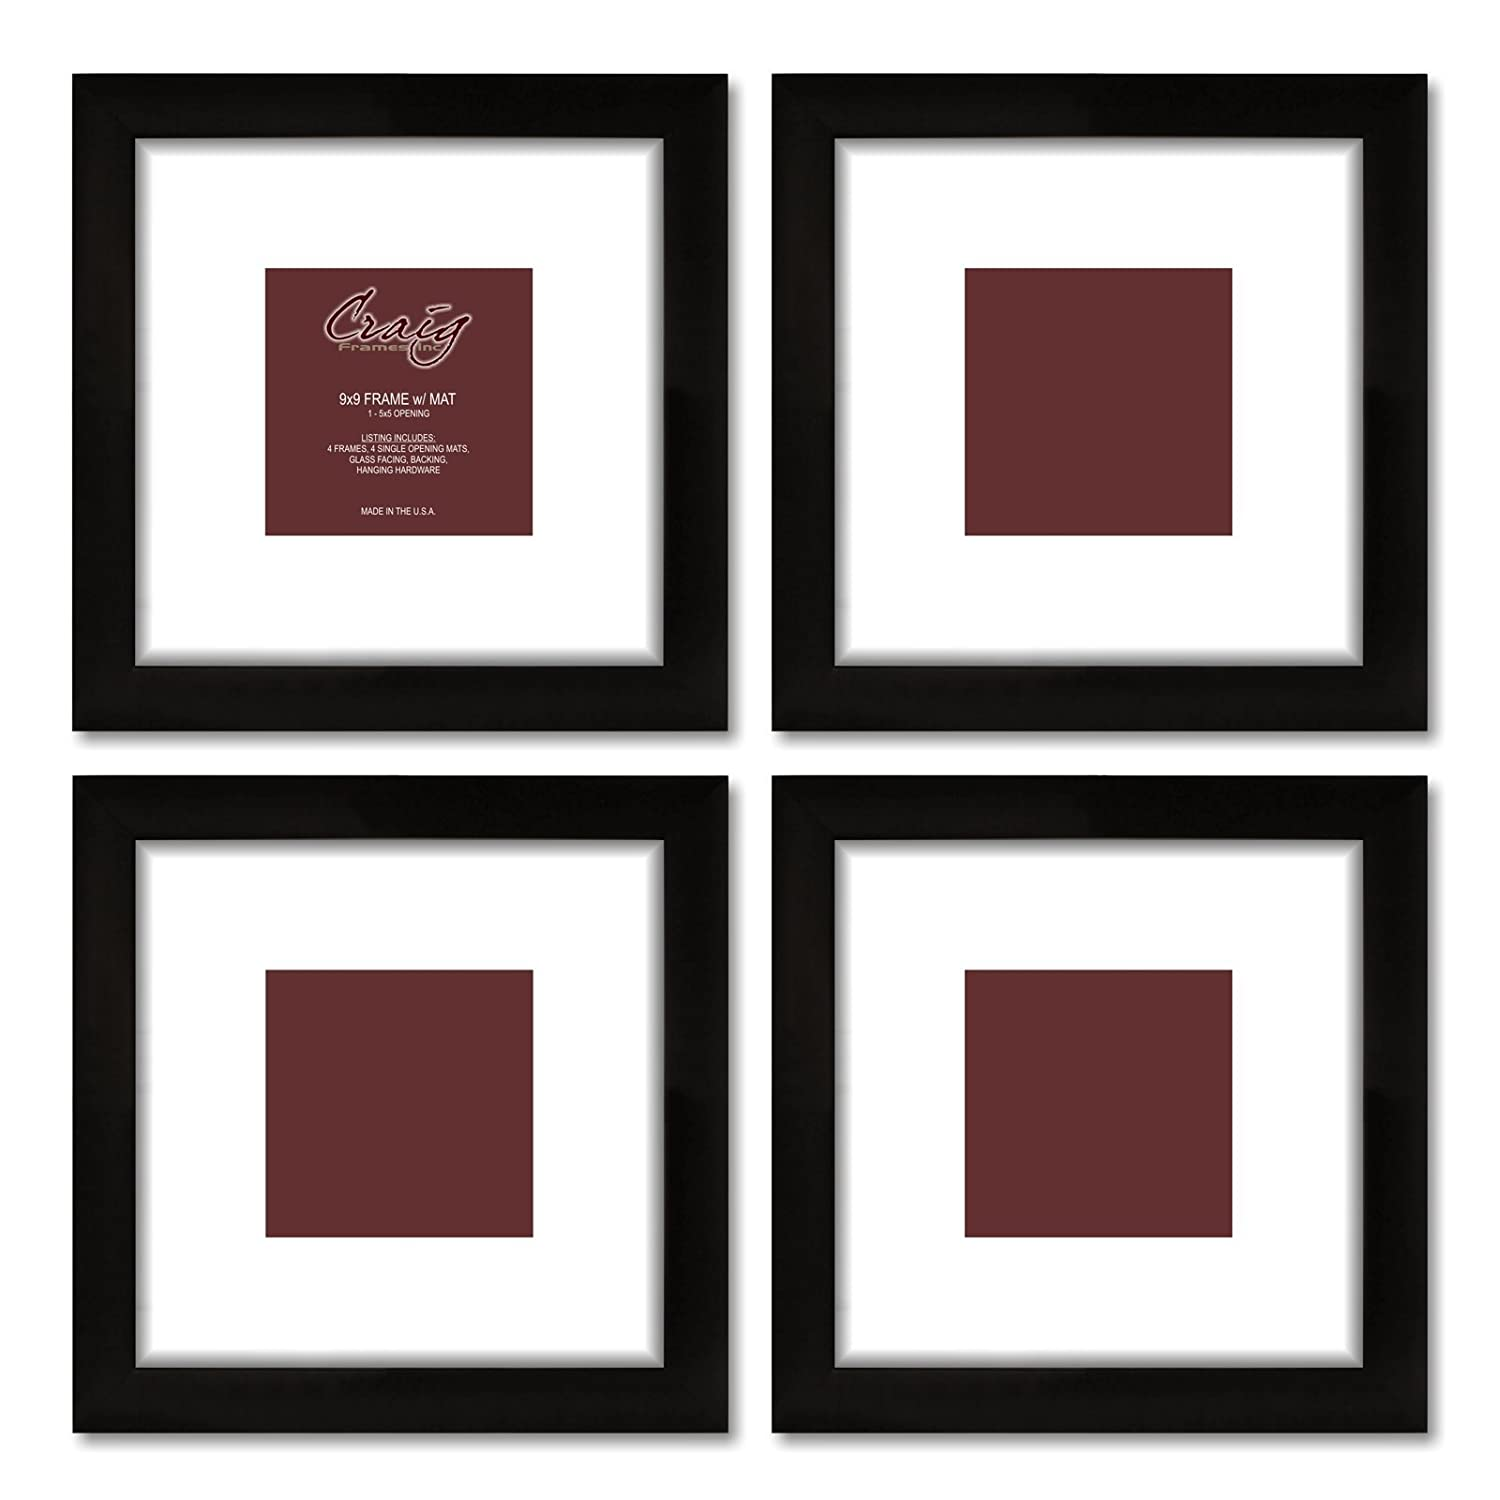 Amazon craig frames 1wb3bk 9 by 9 inch black picture frame amazon craig frames 1wb3bk 9 by 9 inch black picture frame white mat with 5 by 5 inch opening 4 piece set jeuxipadfo Gallery